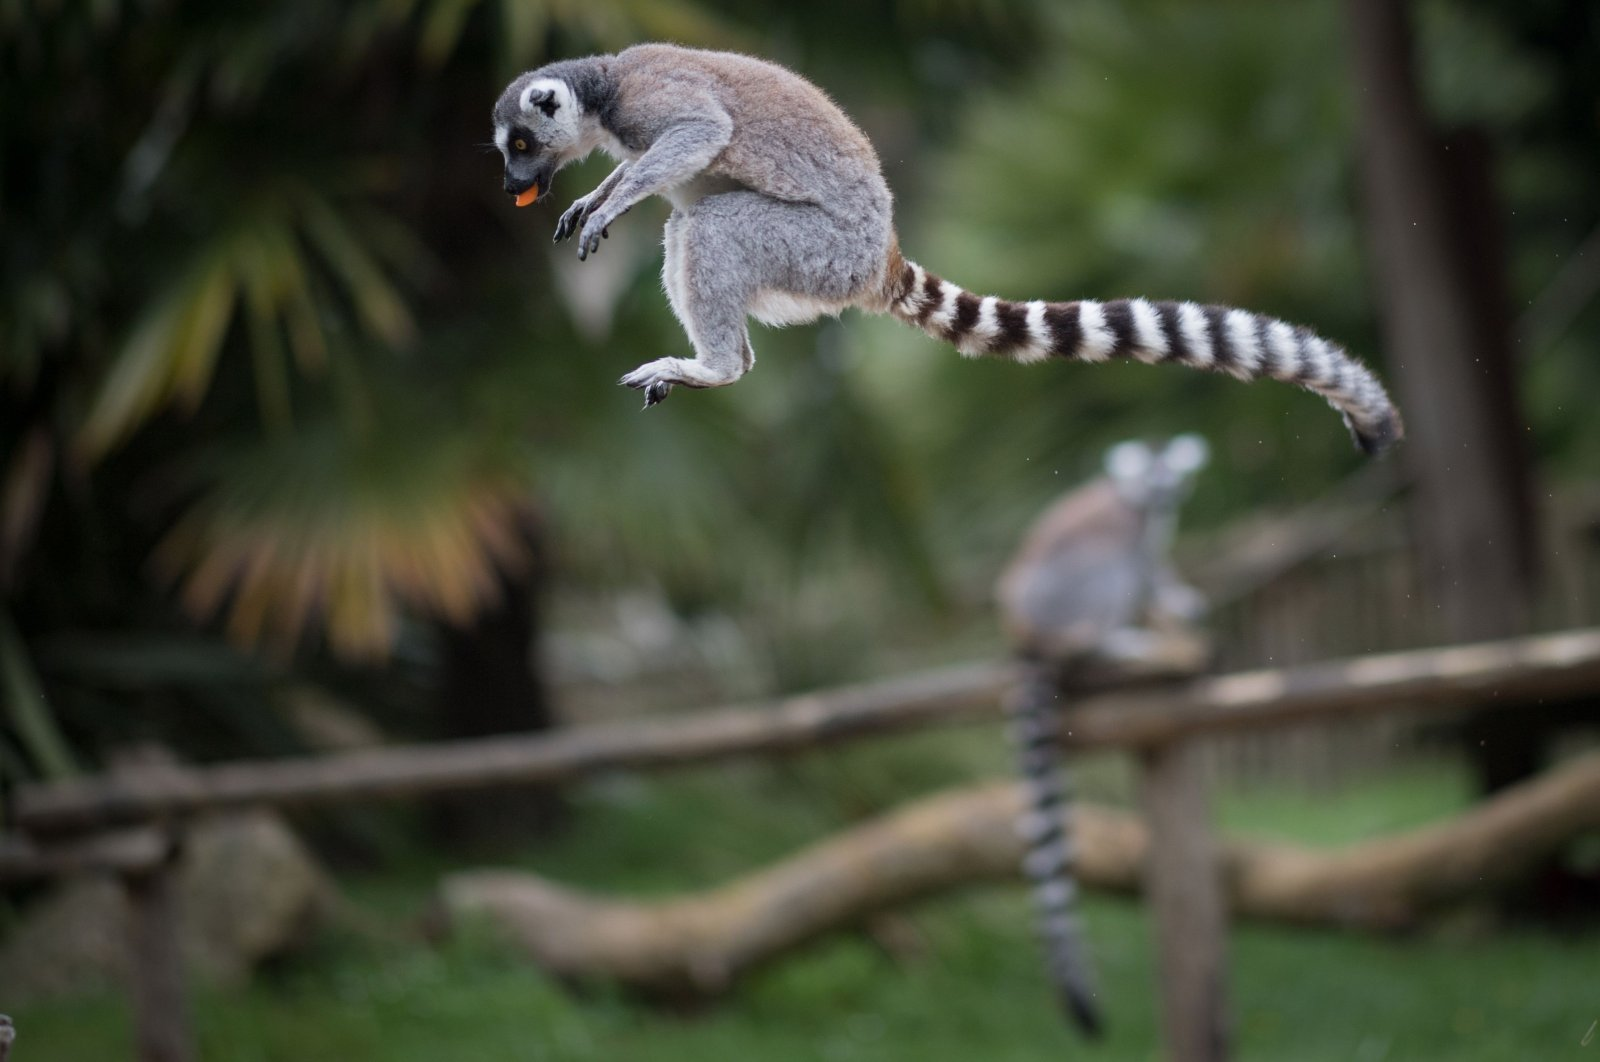 """In this file photograph taken on May 6, 2020, a lemur jumps with a piece of carrot in his mouth at the zoological park """"Planete Sauvage"""" at Saint-Pere-en-Retz, on the outskirts of Nantes. (AFP Photo)"""